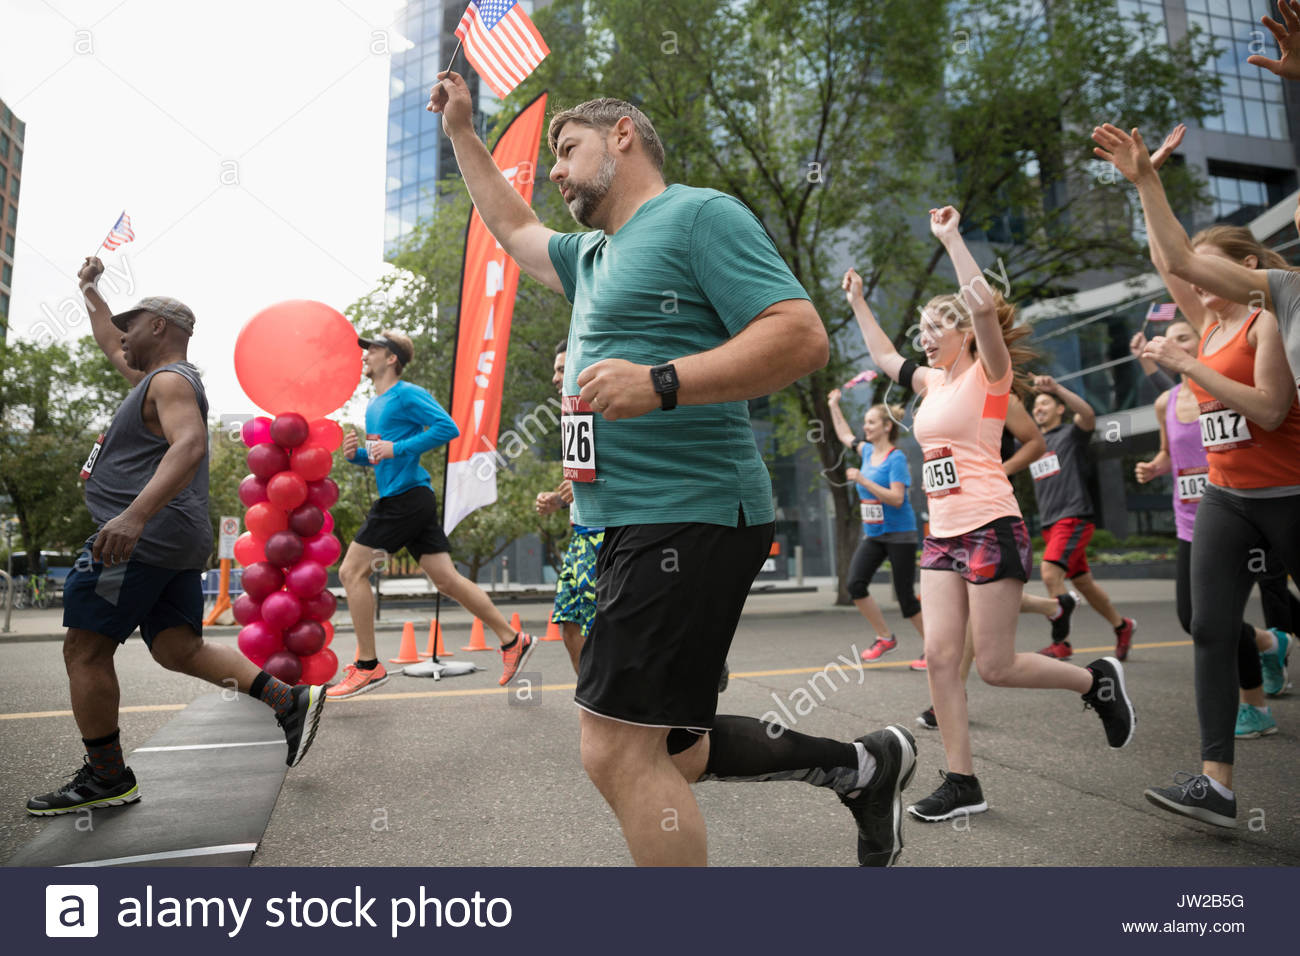 Marathon runners with American flags crossing finish line - Stock Image